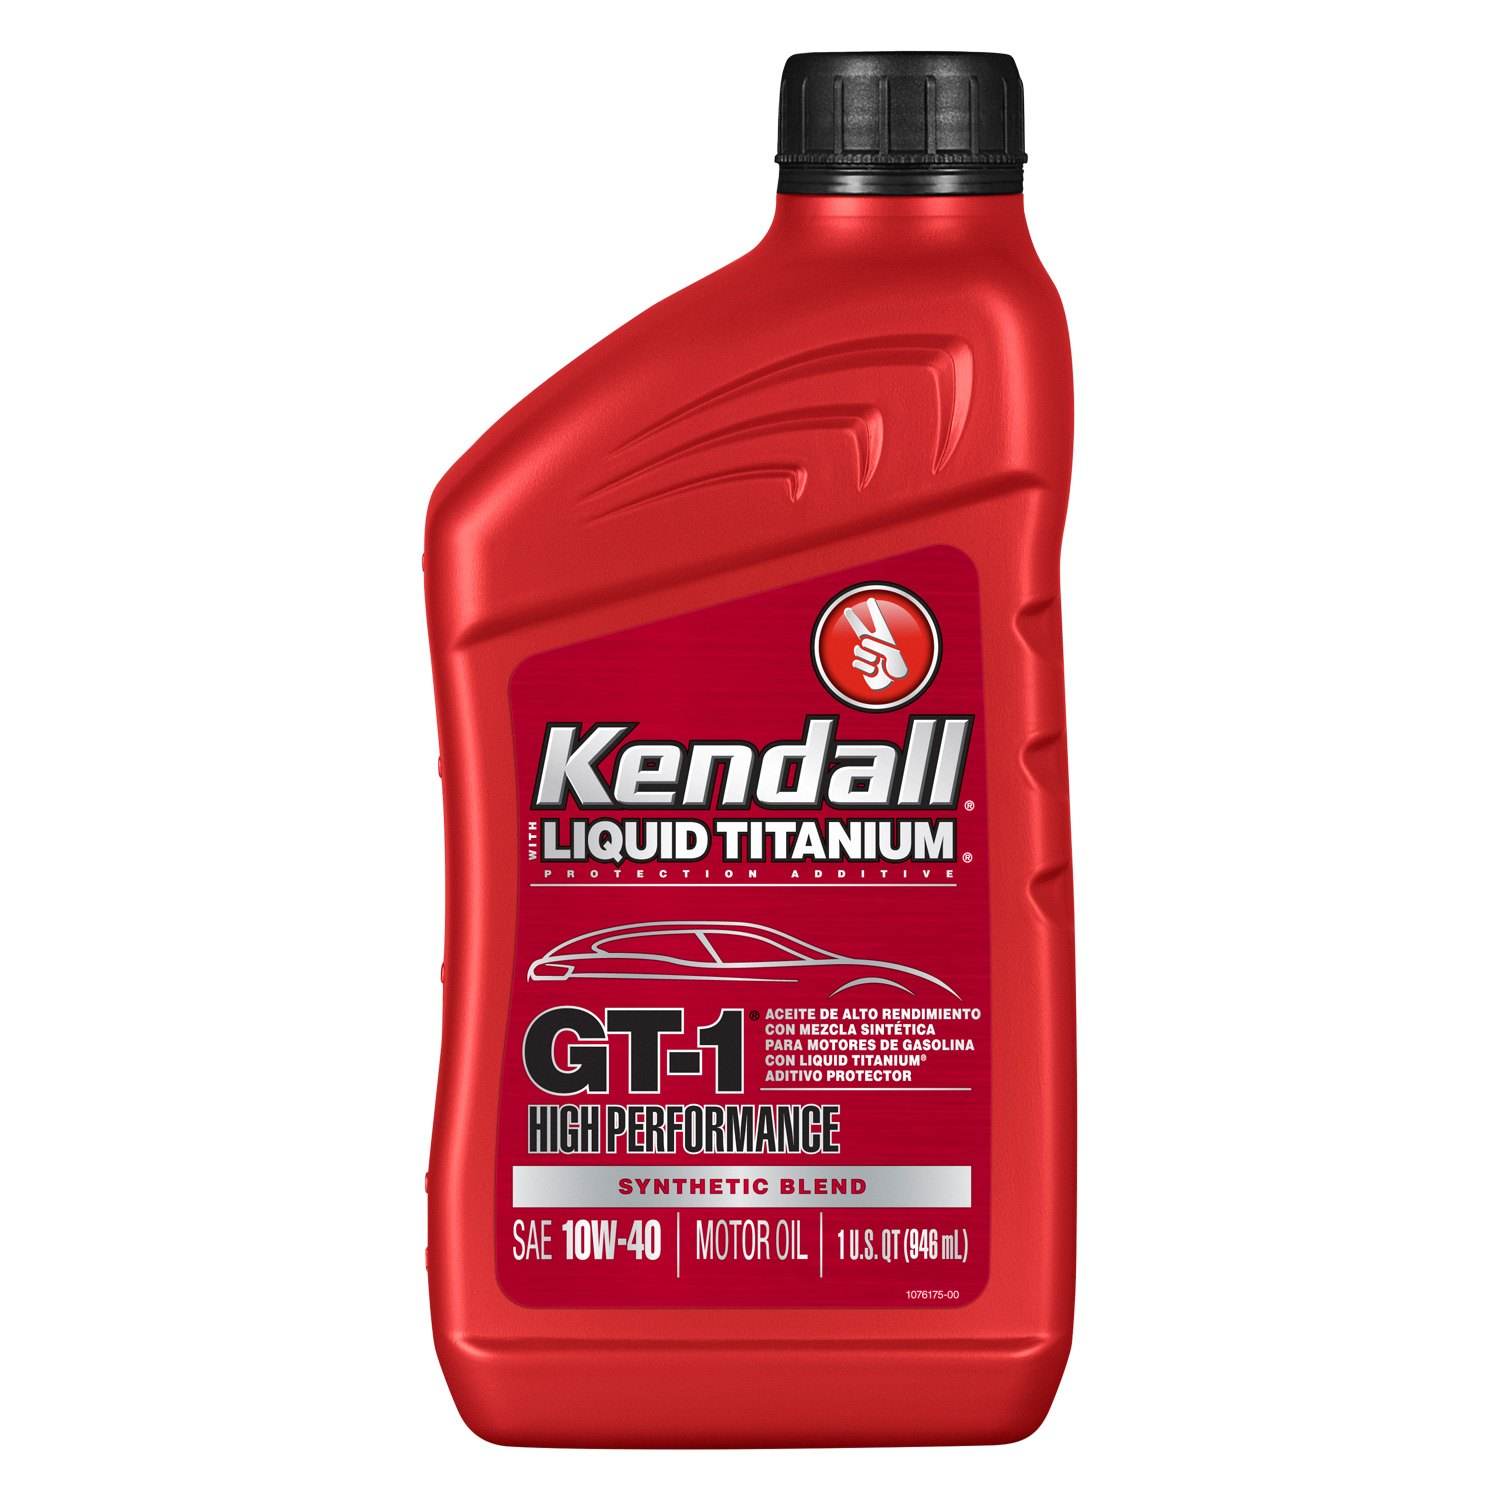 Kendall Gt 1 High Performance Synthetic Blend Motor Oil